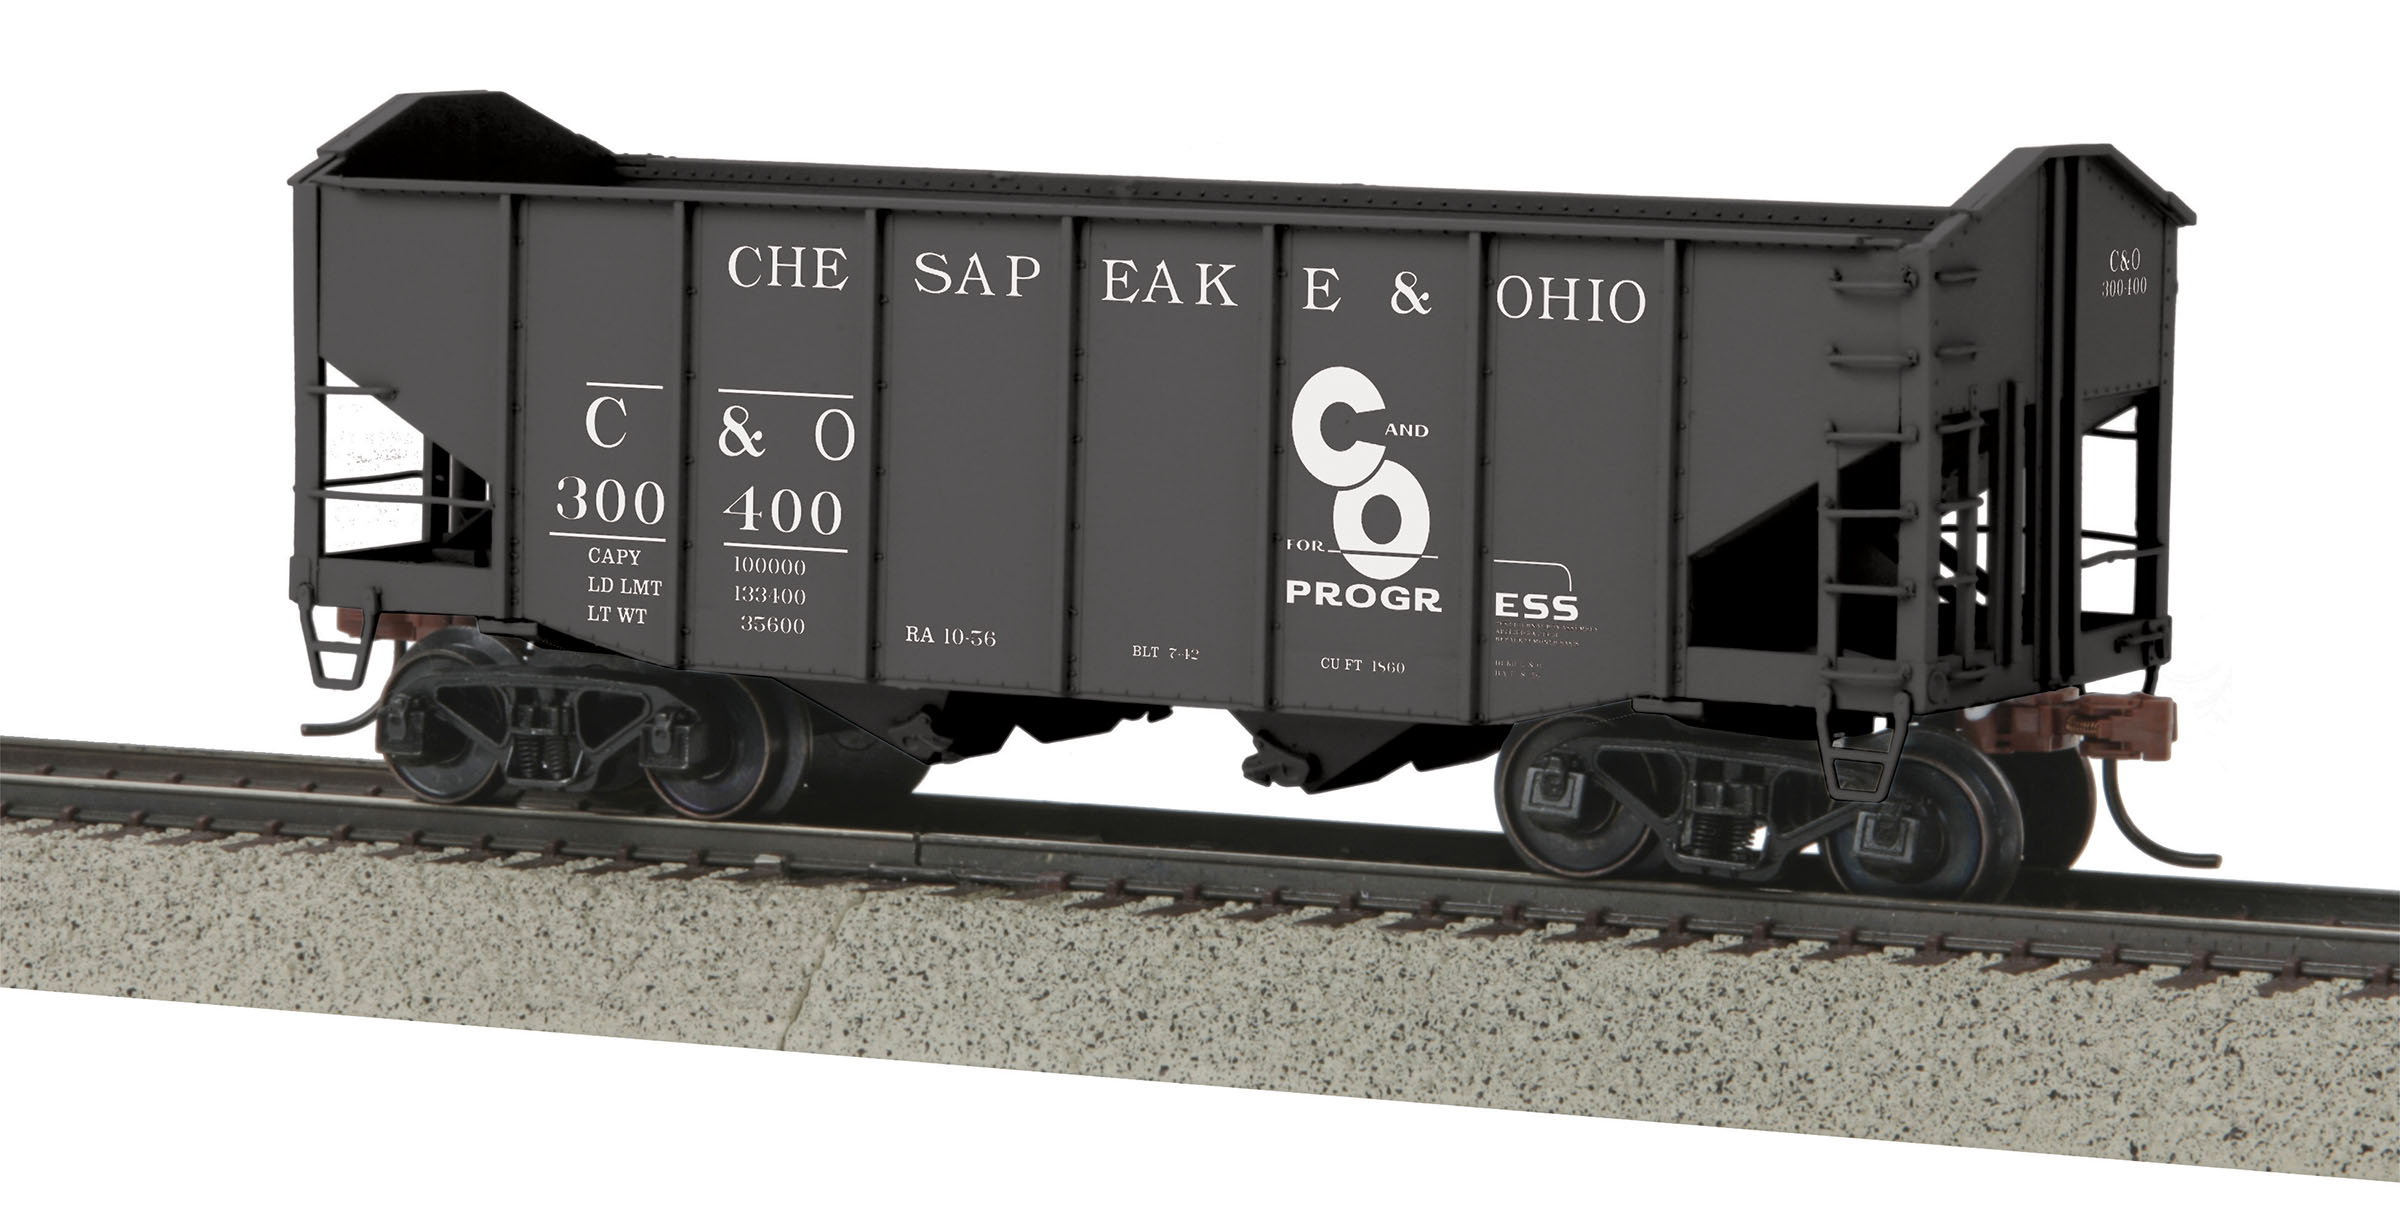 MTH 3575056 2Bay Fish Belly Hopper Hi-Rail Wheel C&O #300400